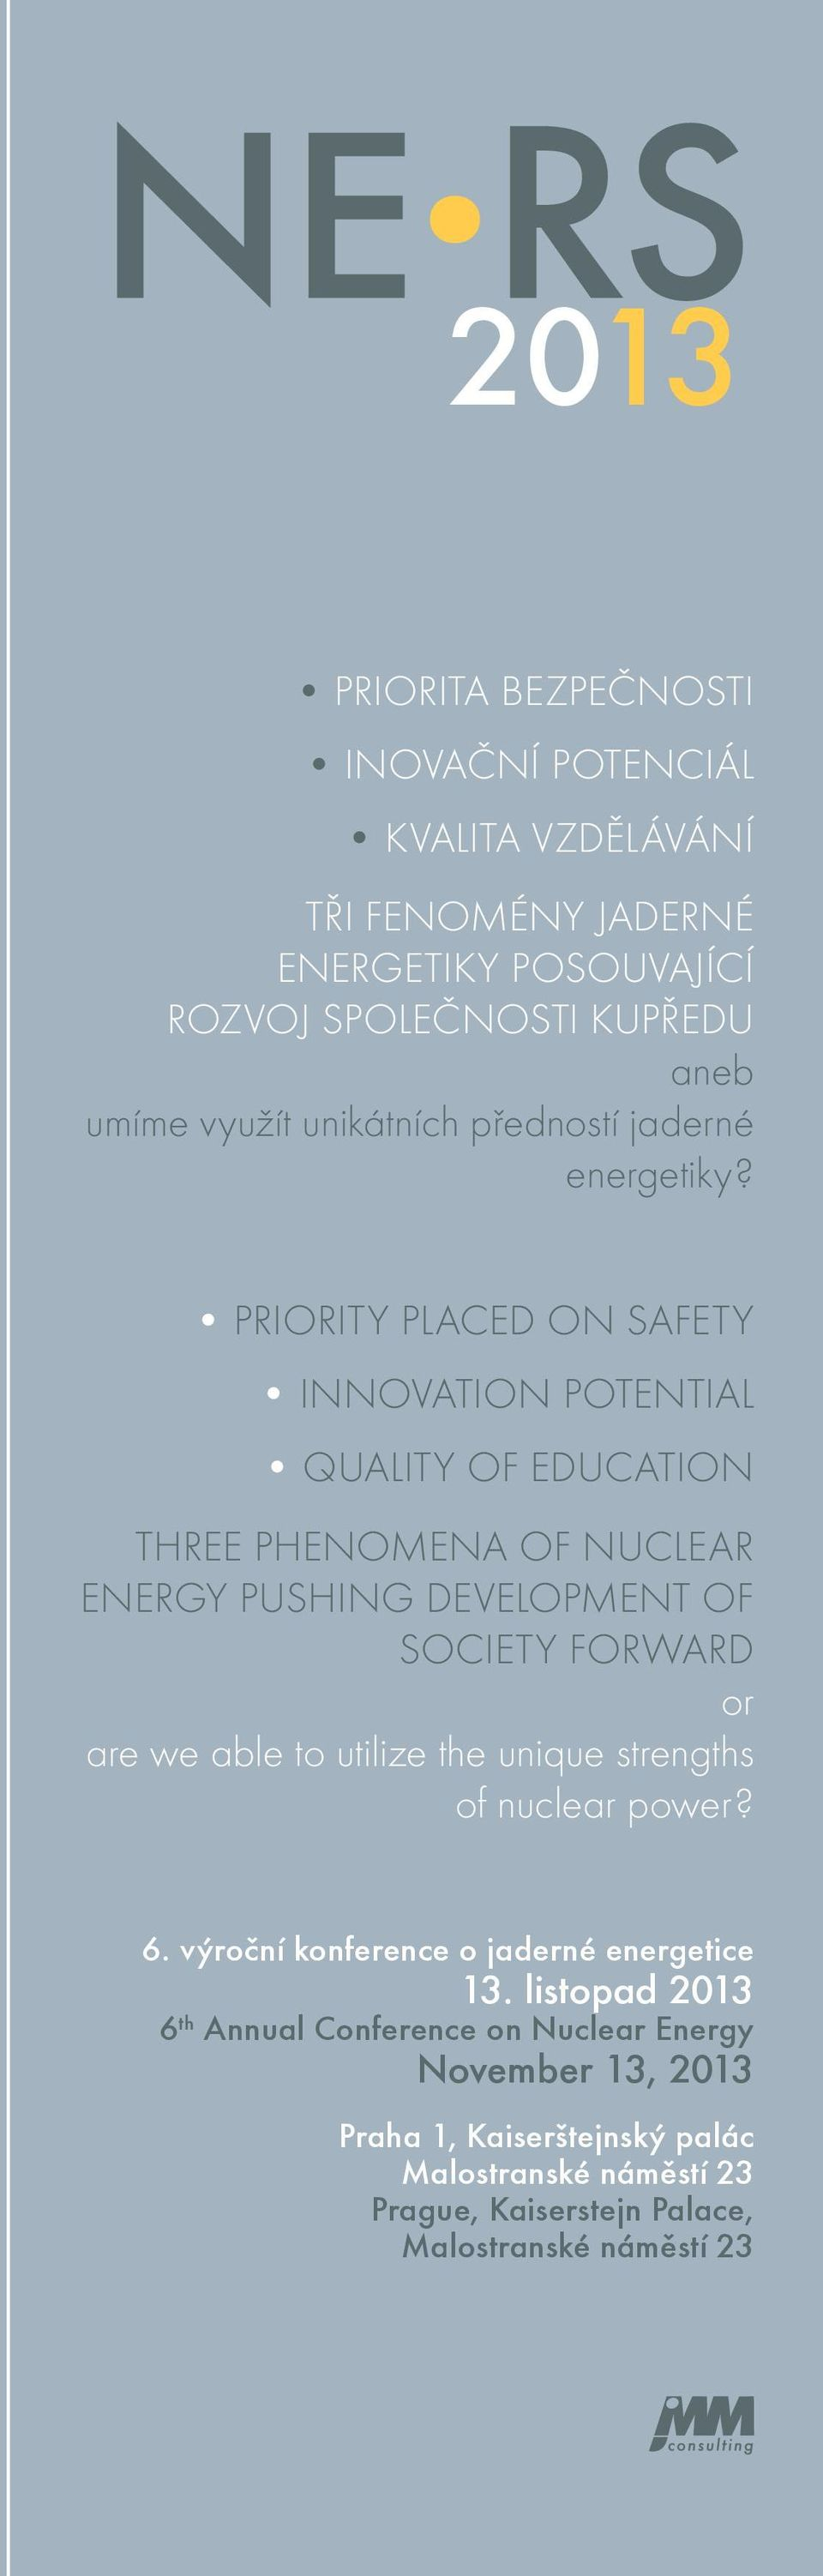 PRIORITY PLACED ON SAFETY INNOVATION POTENTIAL QUALITY OF EDUCATION THREE PHENOMENA OF NUCLEAR ENERGY PUSHING DEVELOPMENT OF SOCIETY FORWARD or are we able